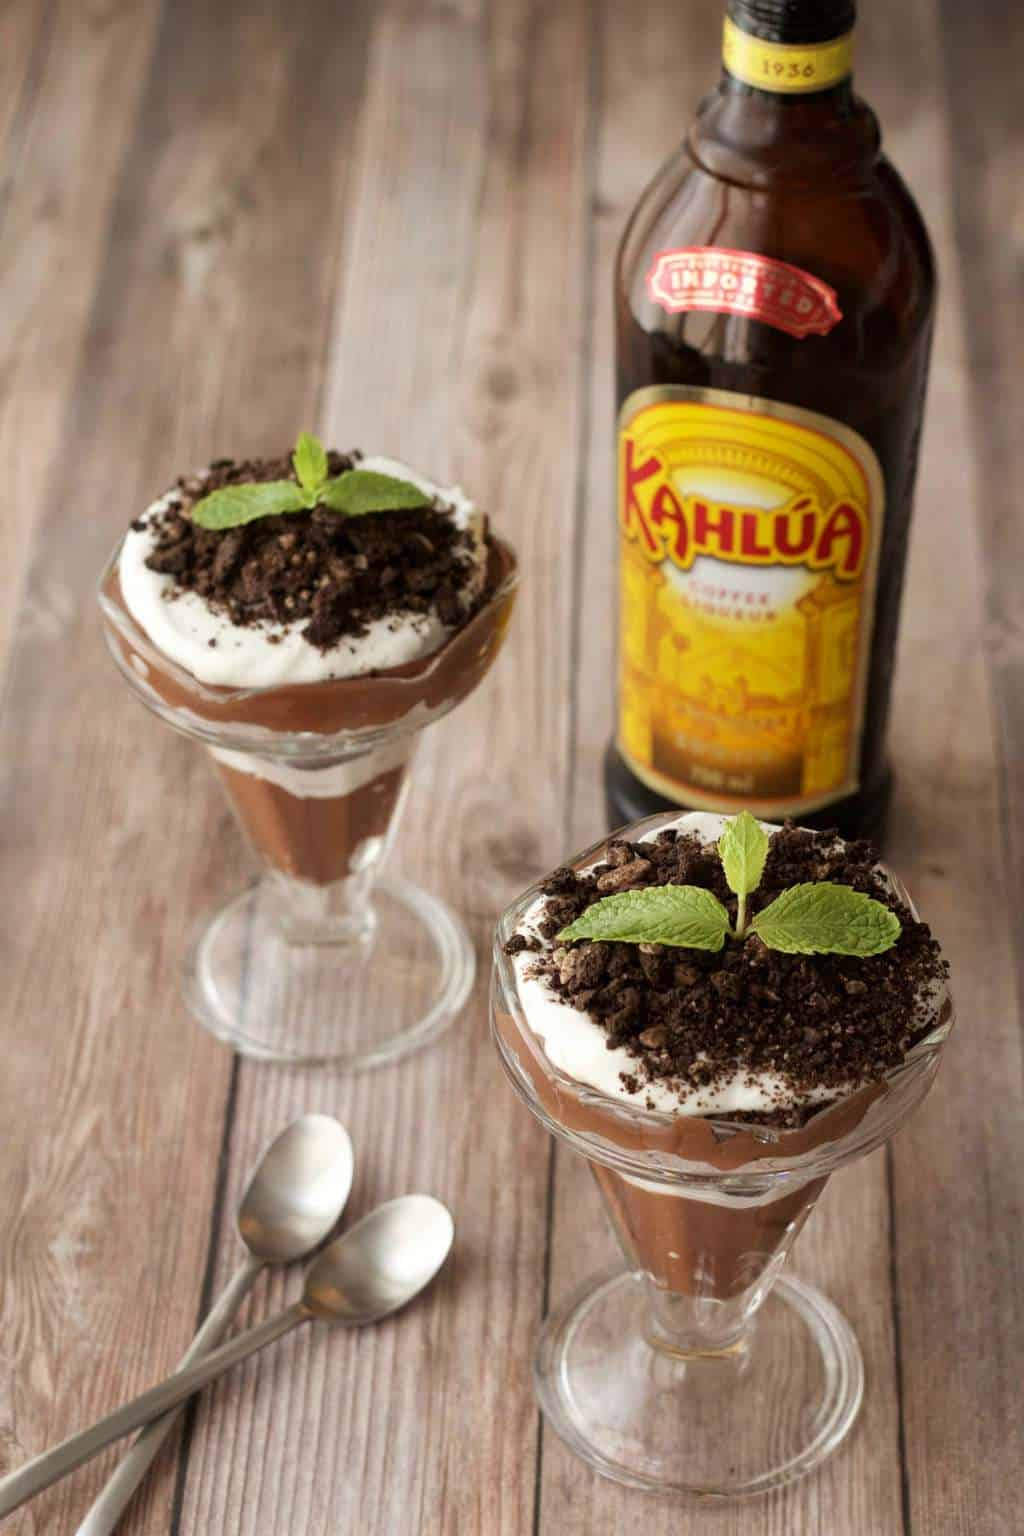 Vegan Kahlua and Cream Parfaits #vegan #kahlua #kahluaandcream #lovingitvegan #dessert #dairyfree